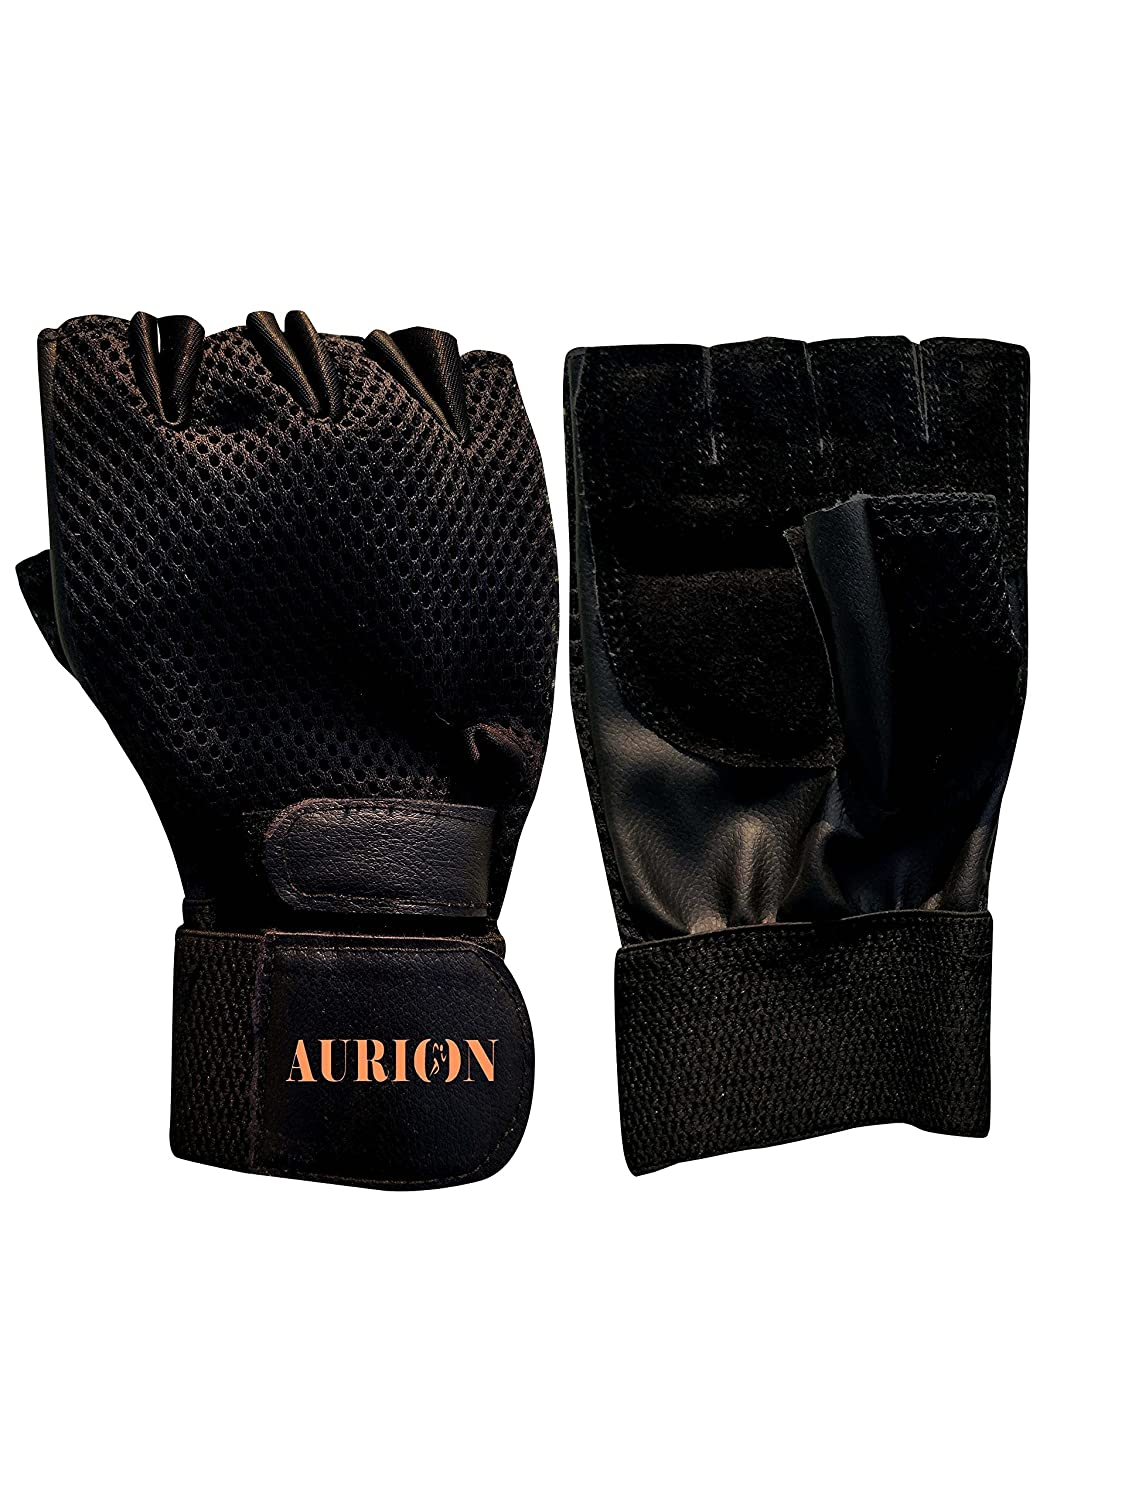 Aurion 1313 Gym Gloves, Youth (Black)